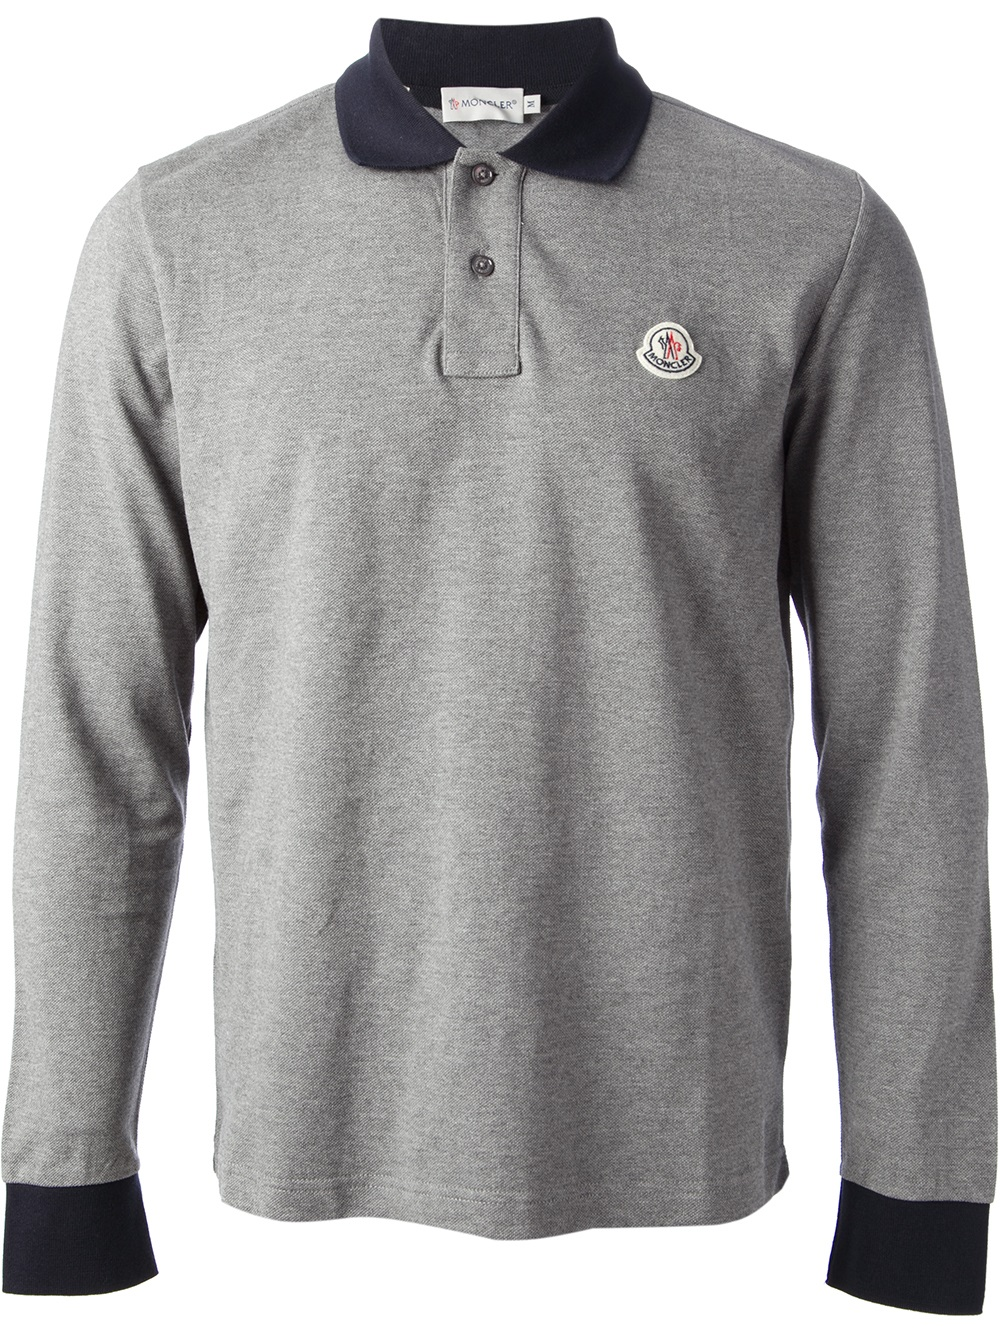 9f19f0c8a Lyst - Moncler Long Sleeve Polo Shirt in Gray for Men